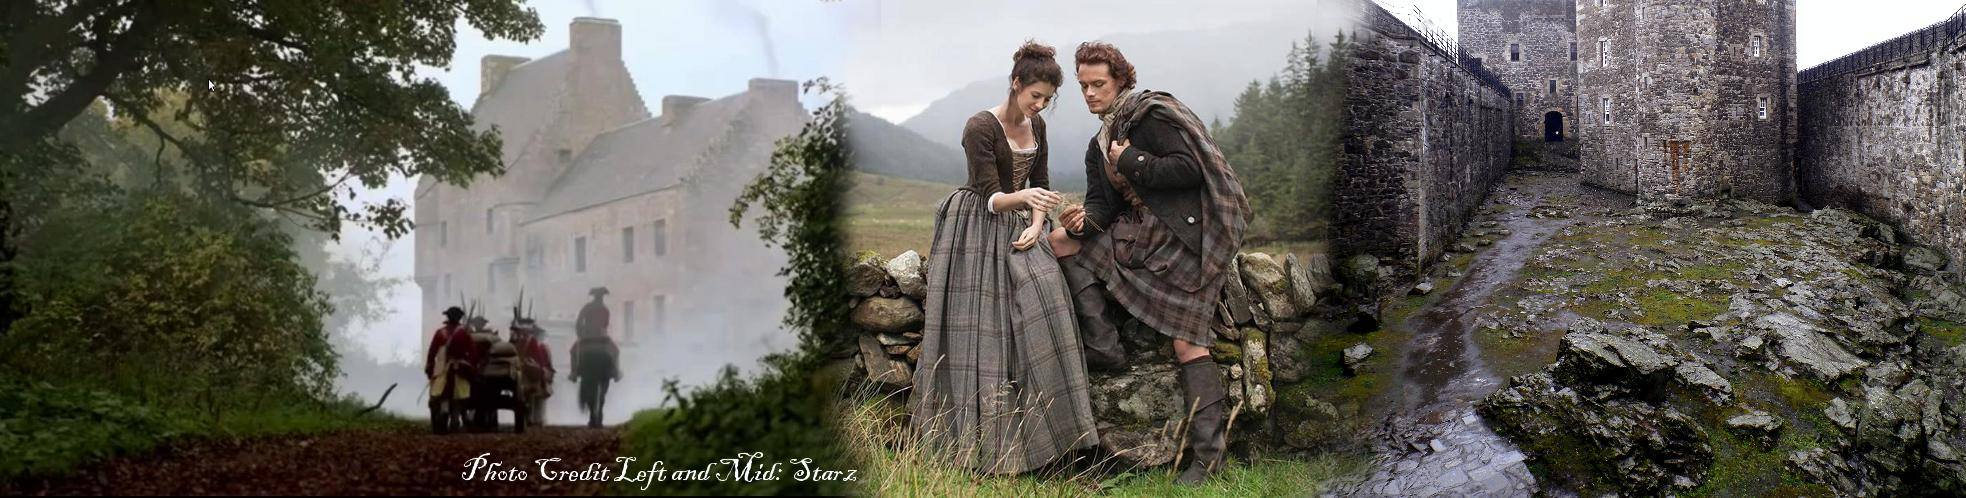 The Jamie and Claire Tour(TM)